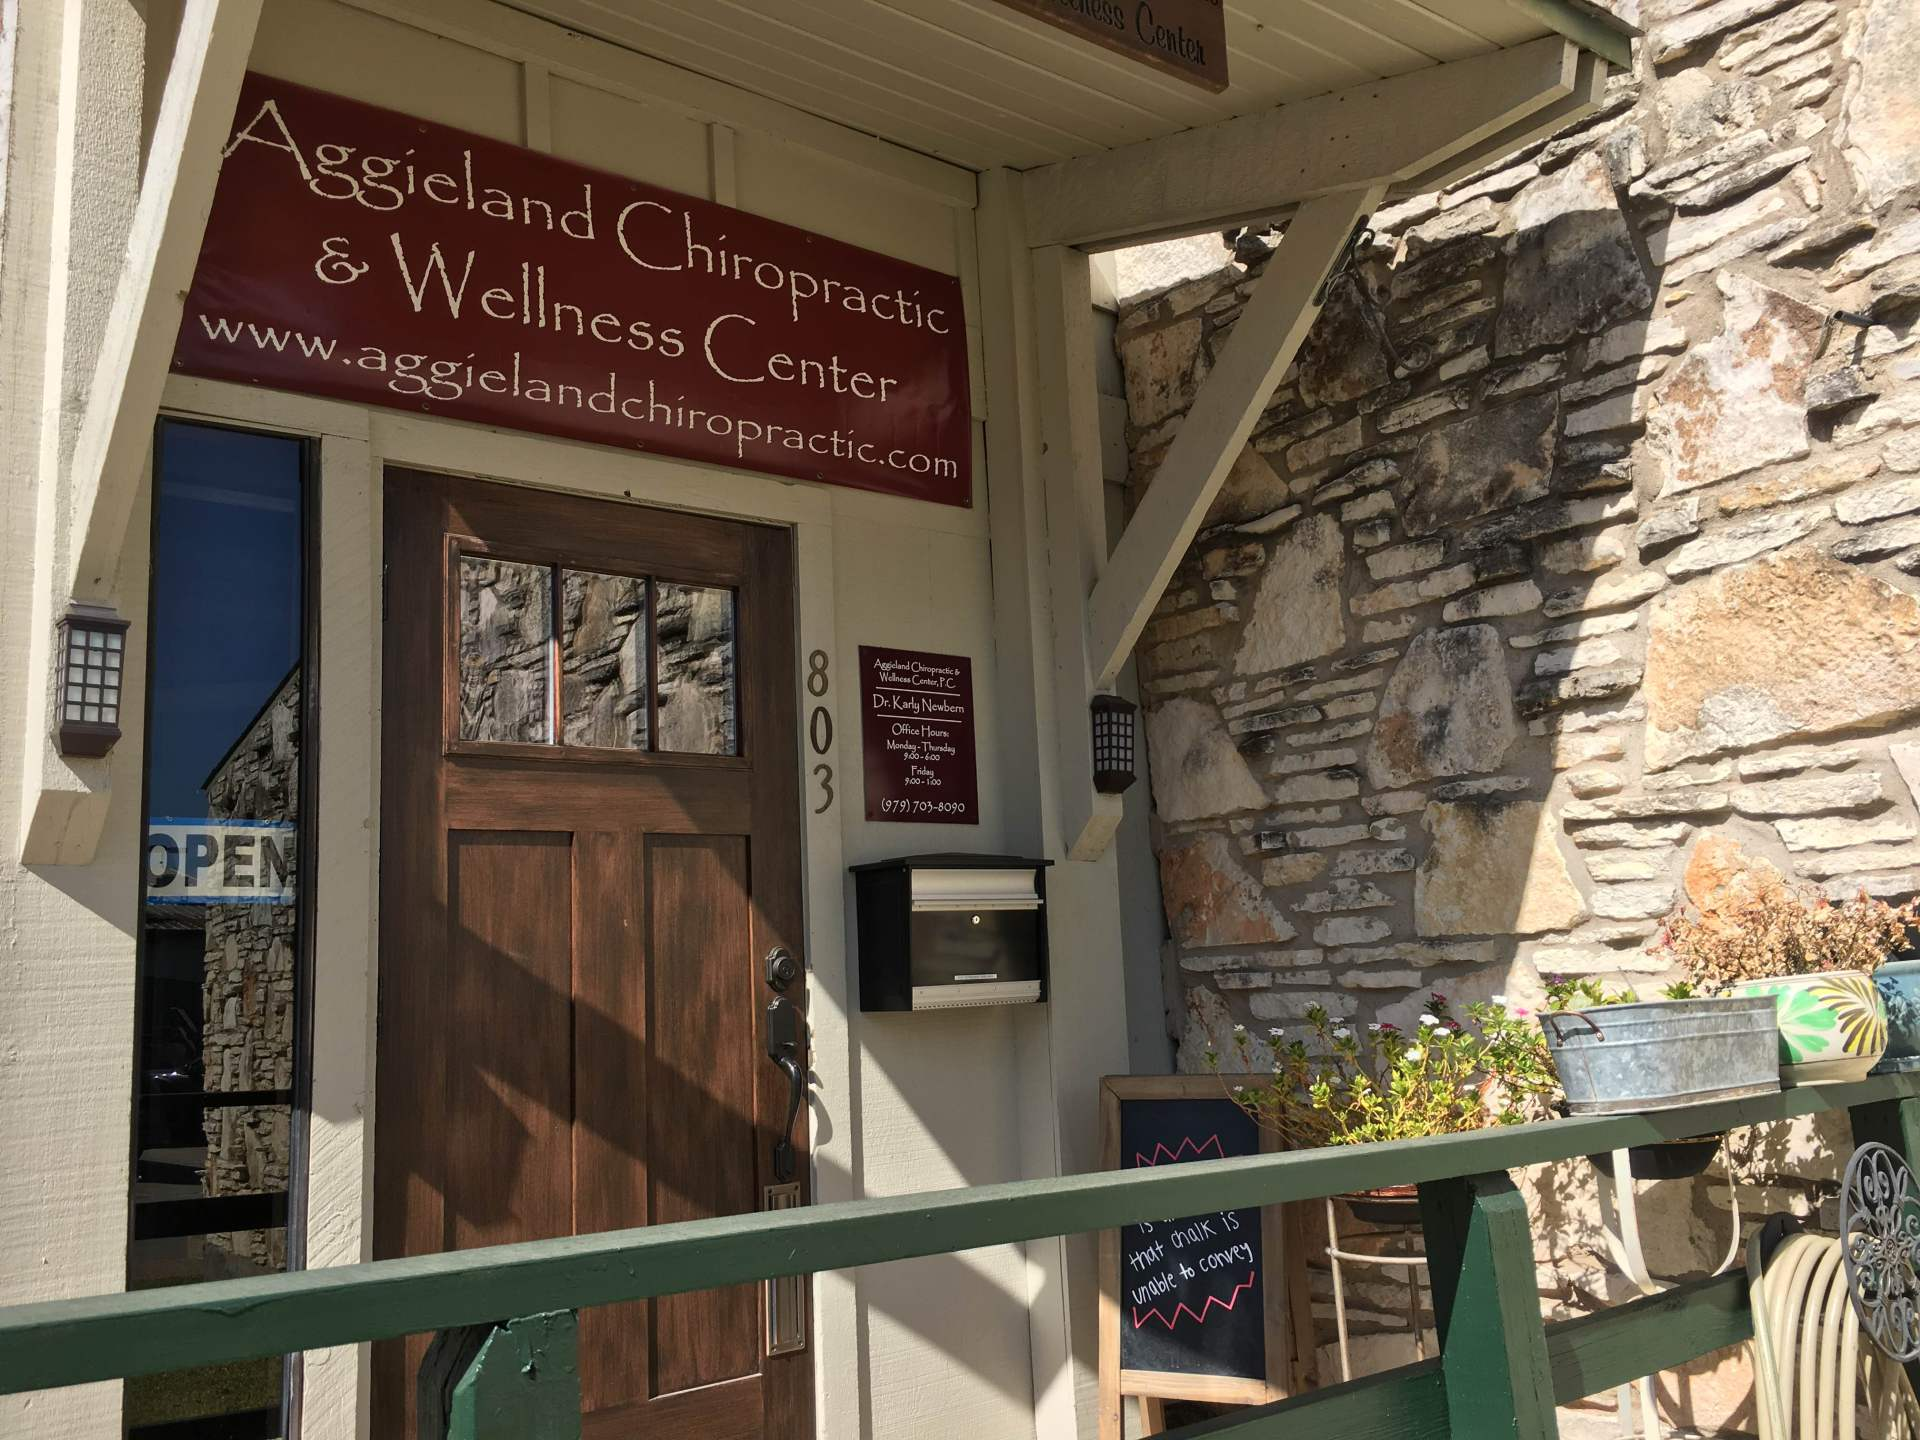 Aggieland Chiropractic & Wellness Center